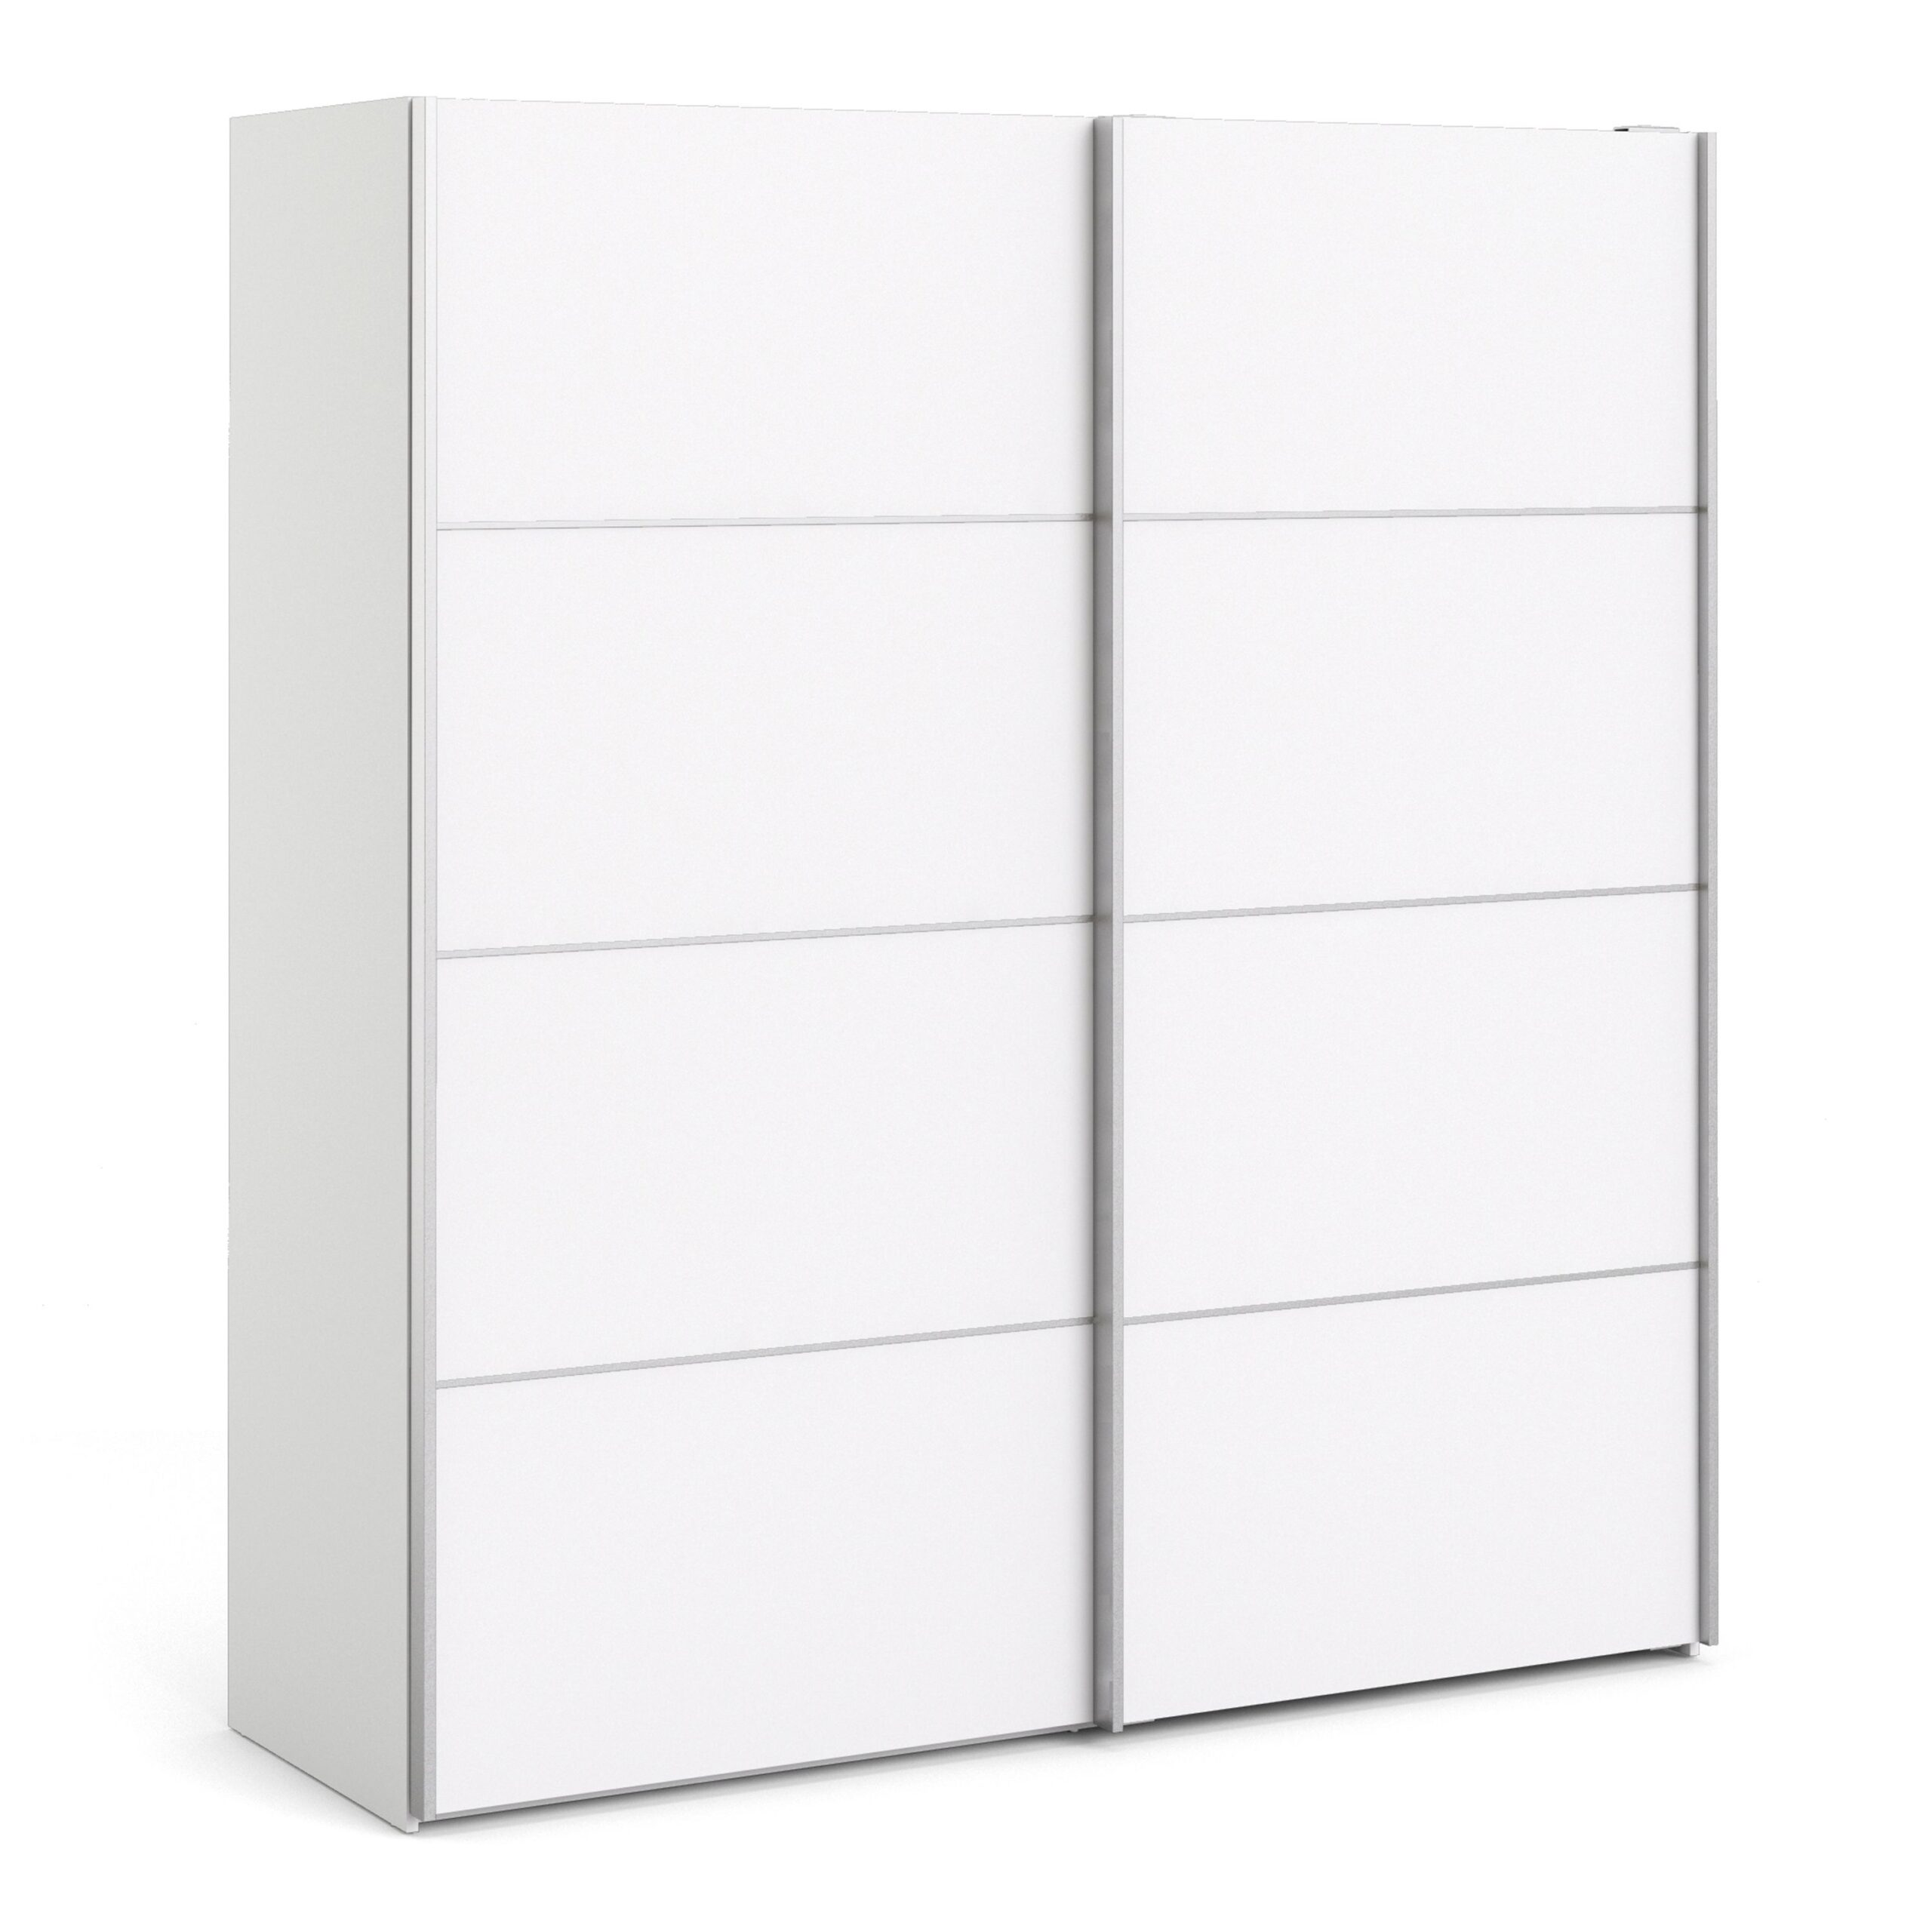 Phillipe Sliding Wardrobe 180cm in White with White Doors with 5 Shelves